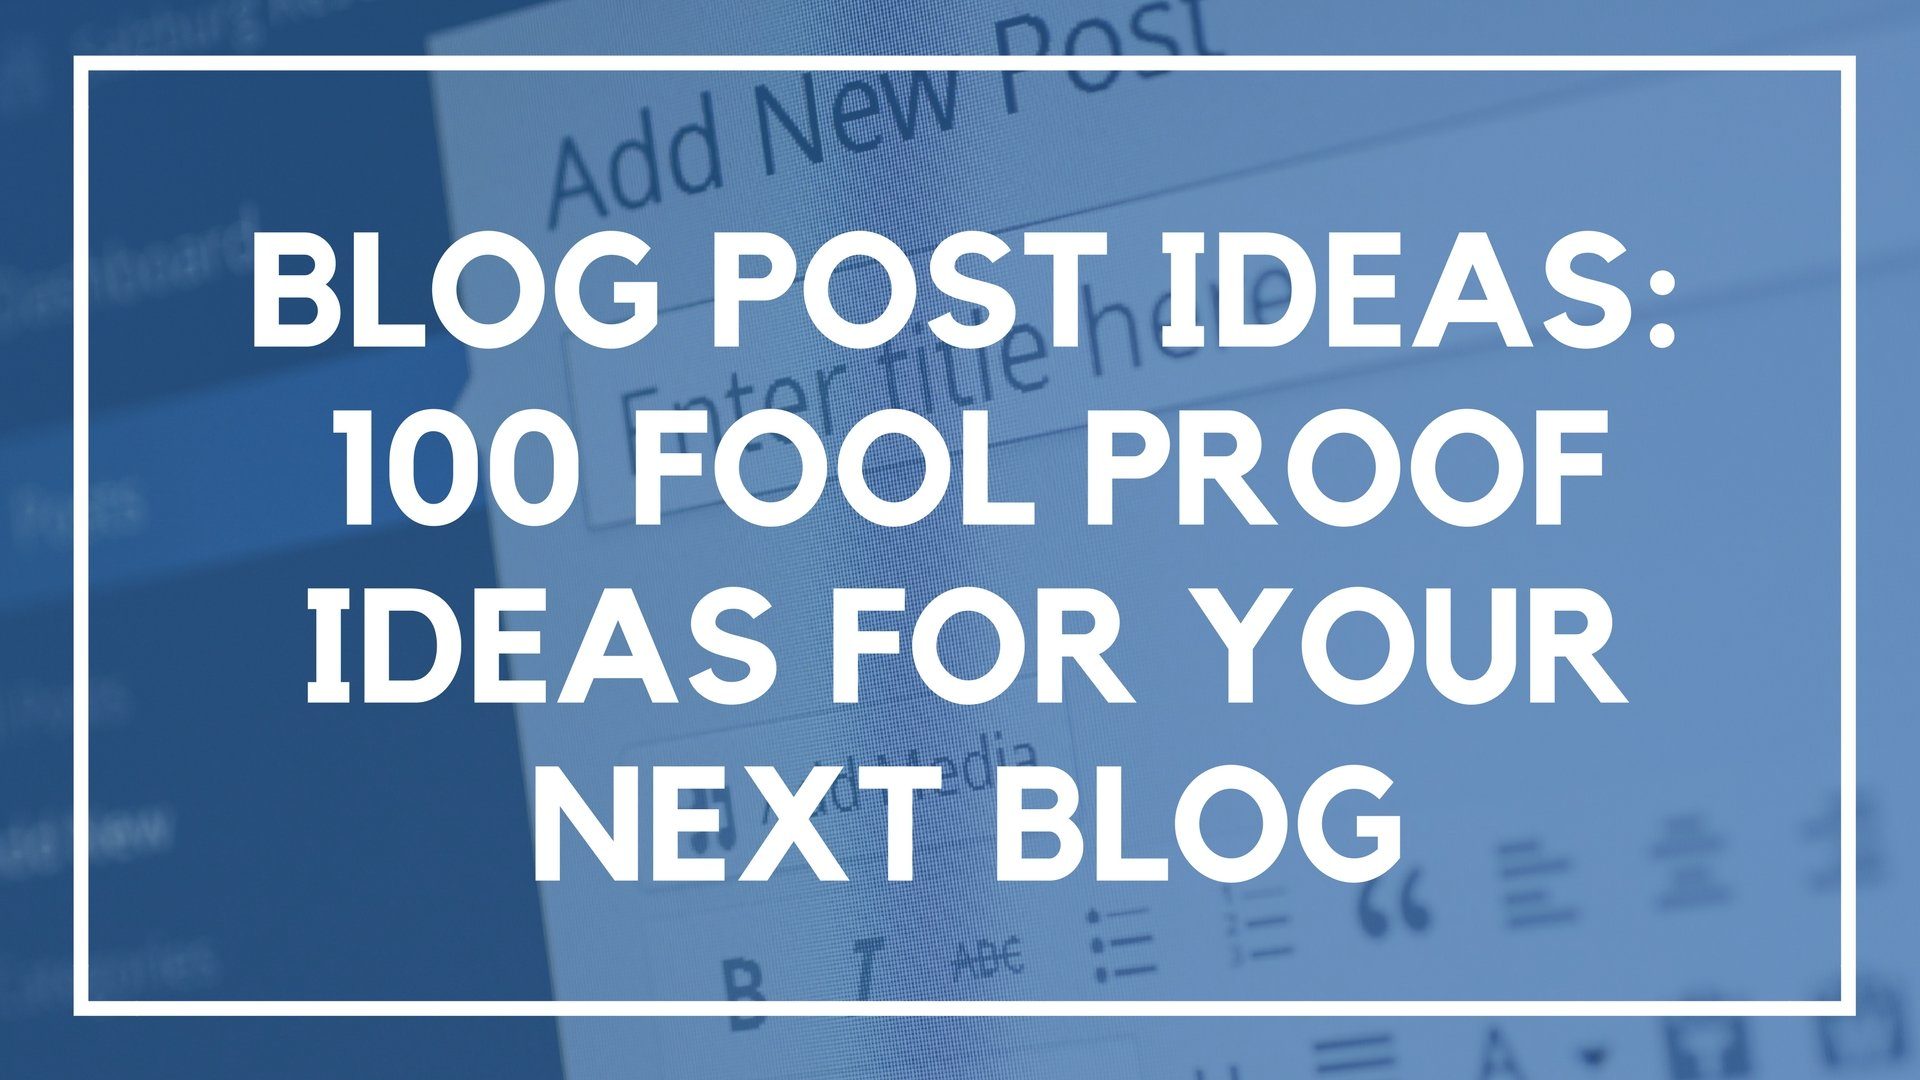 Blog Post Ideas: 100 Fool Proof Ideas for Your Next Blog